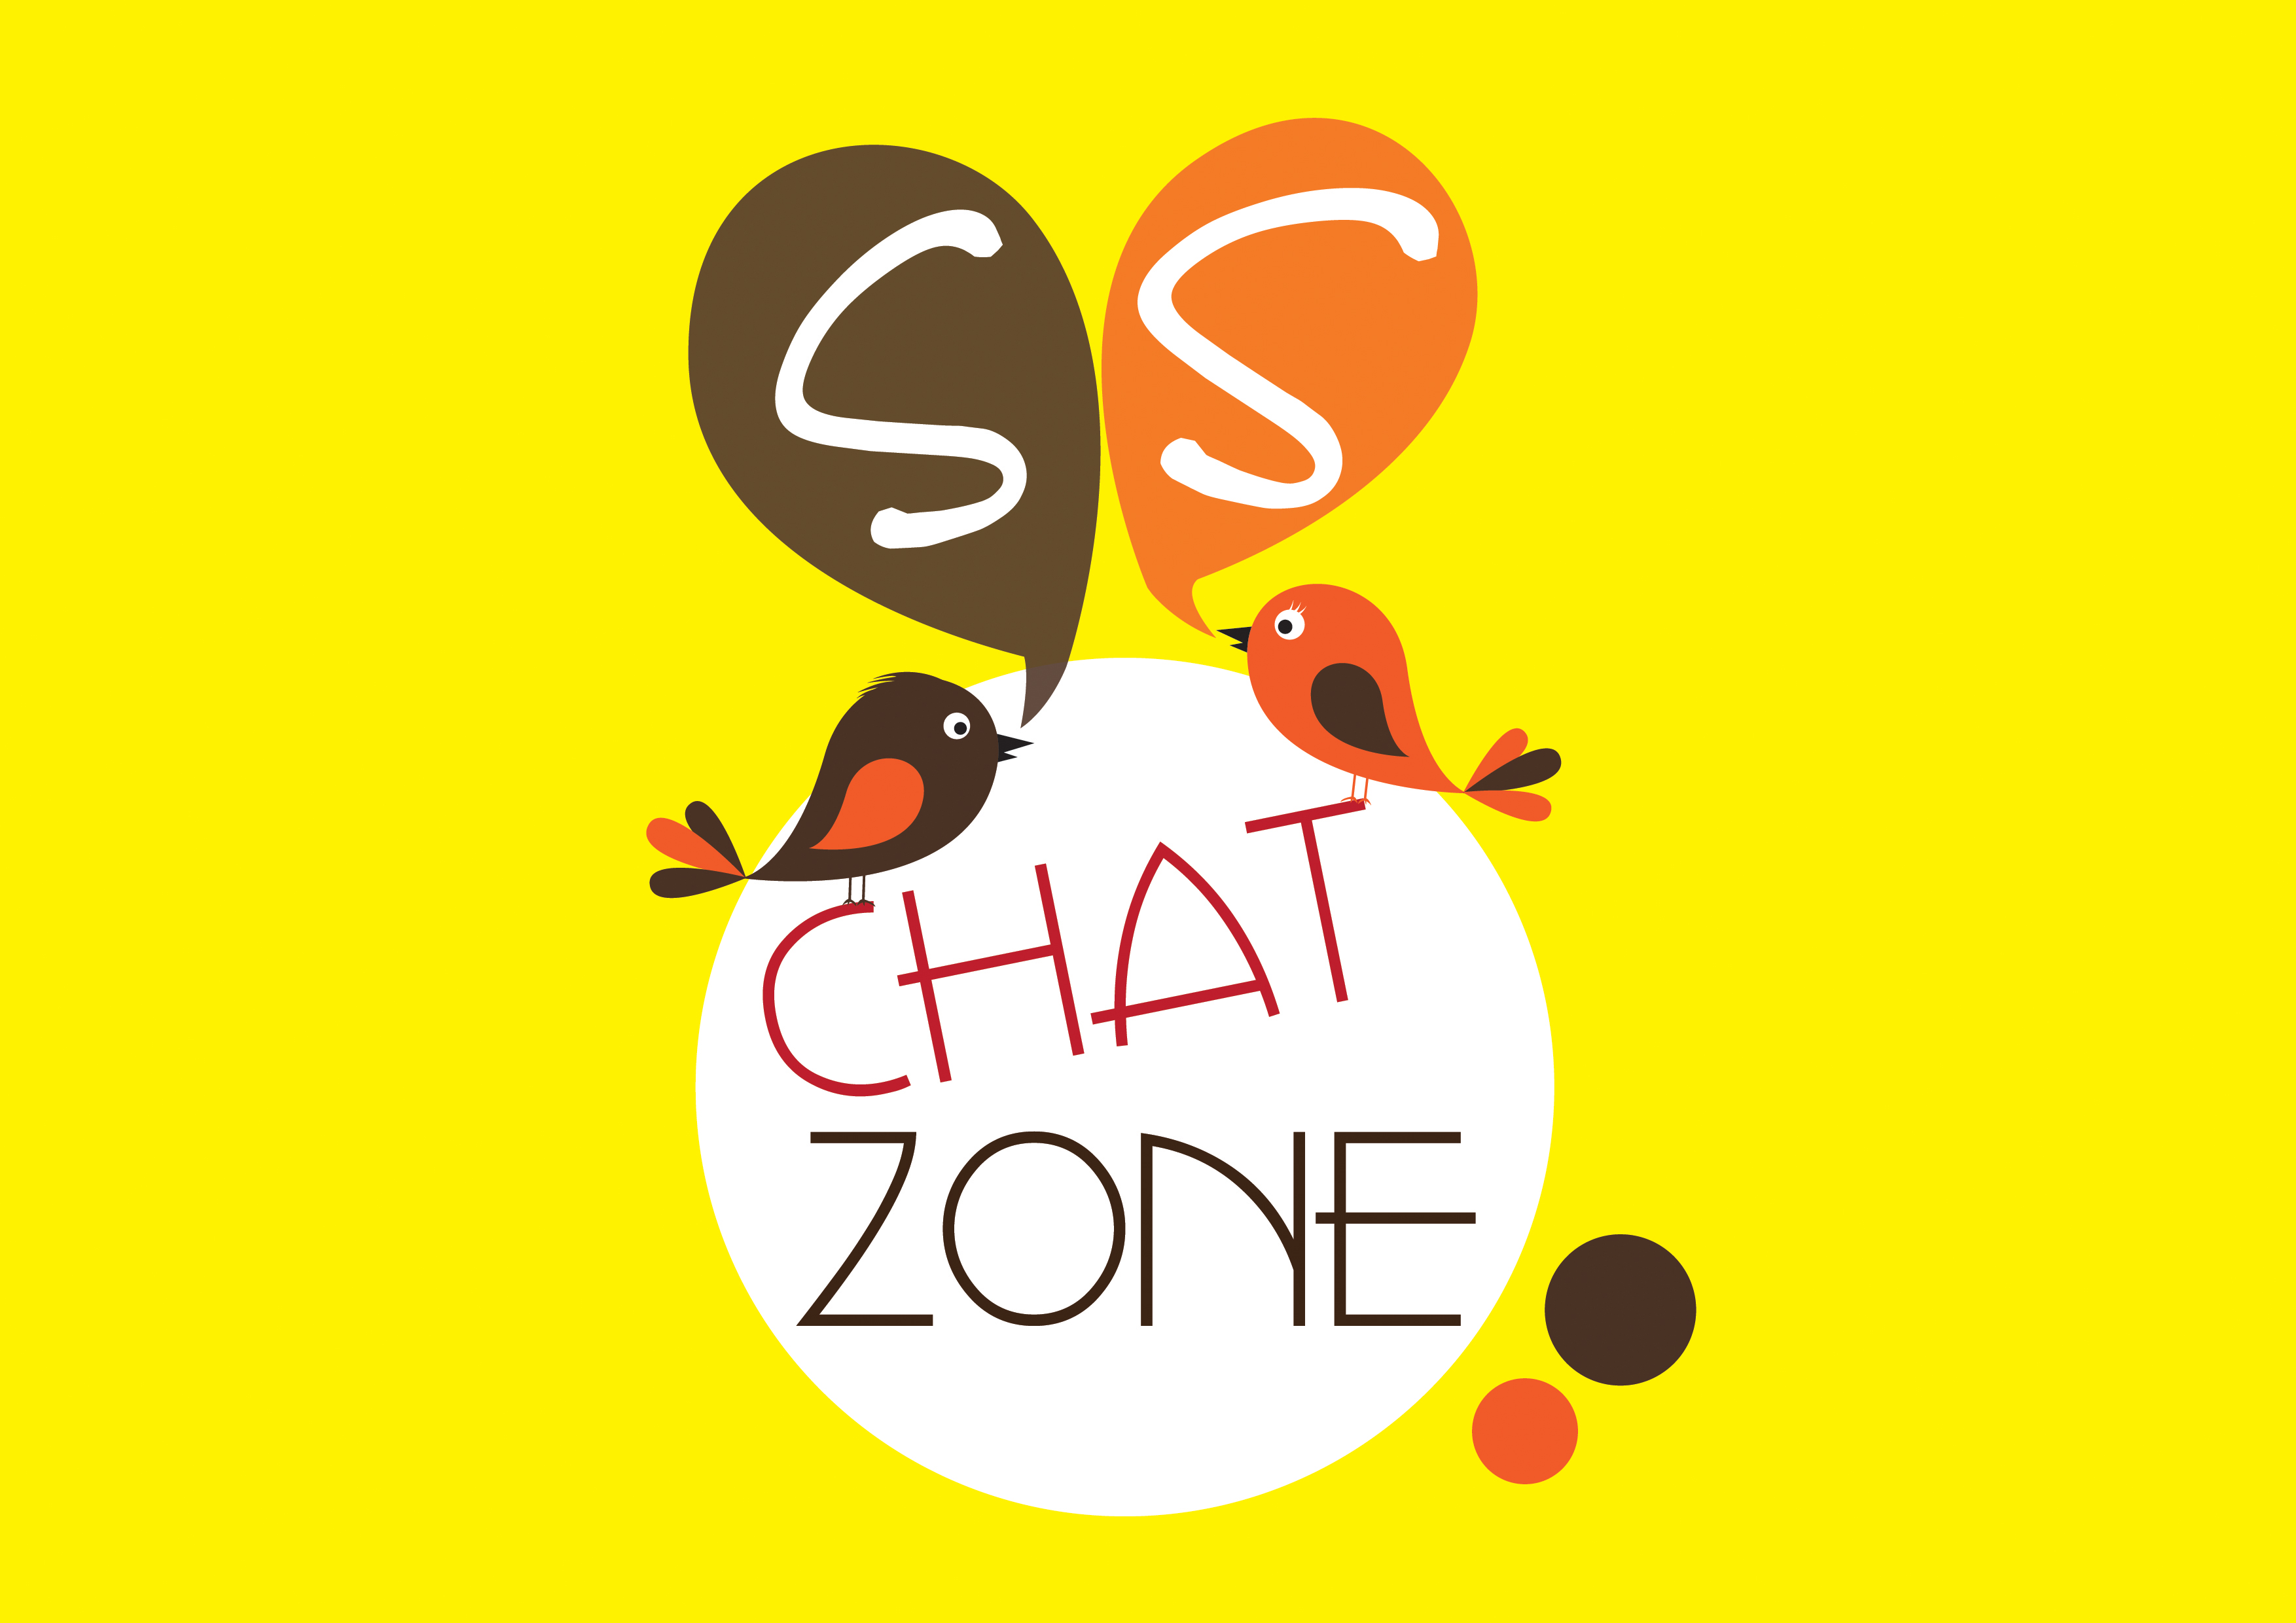 Zone chat